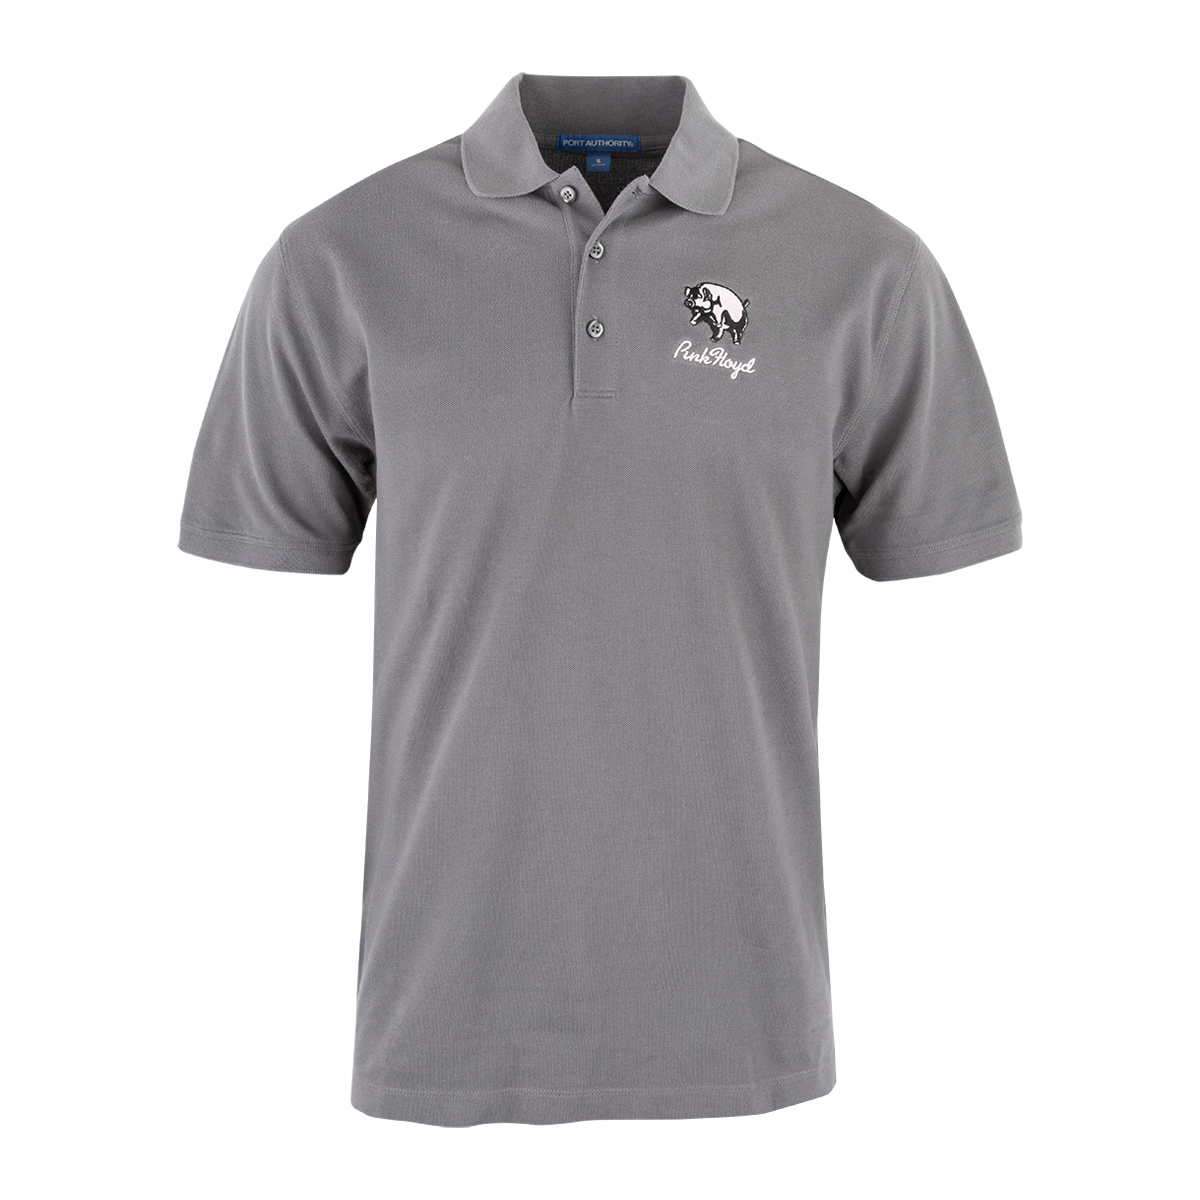 Pink Floyd Flying Pig Polo